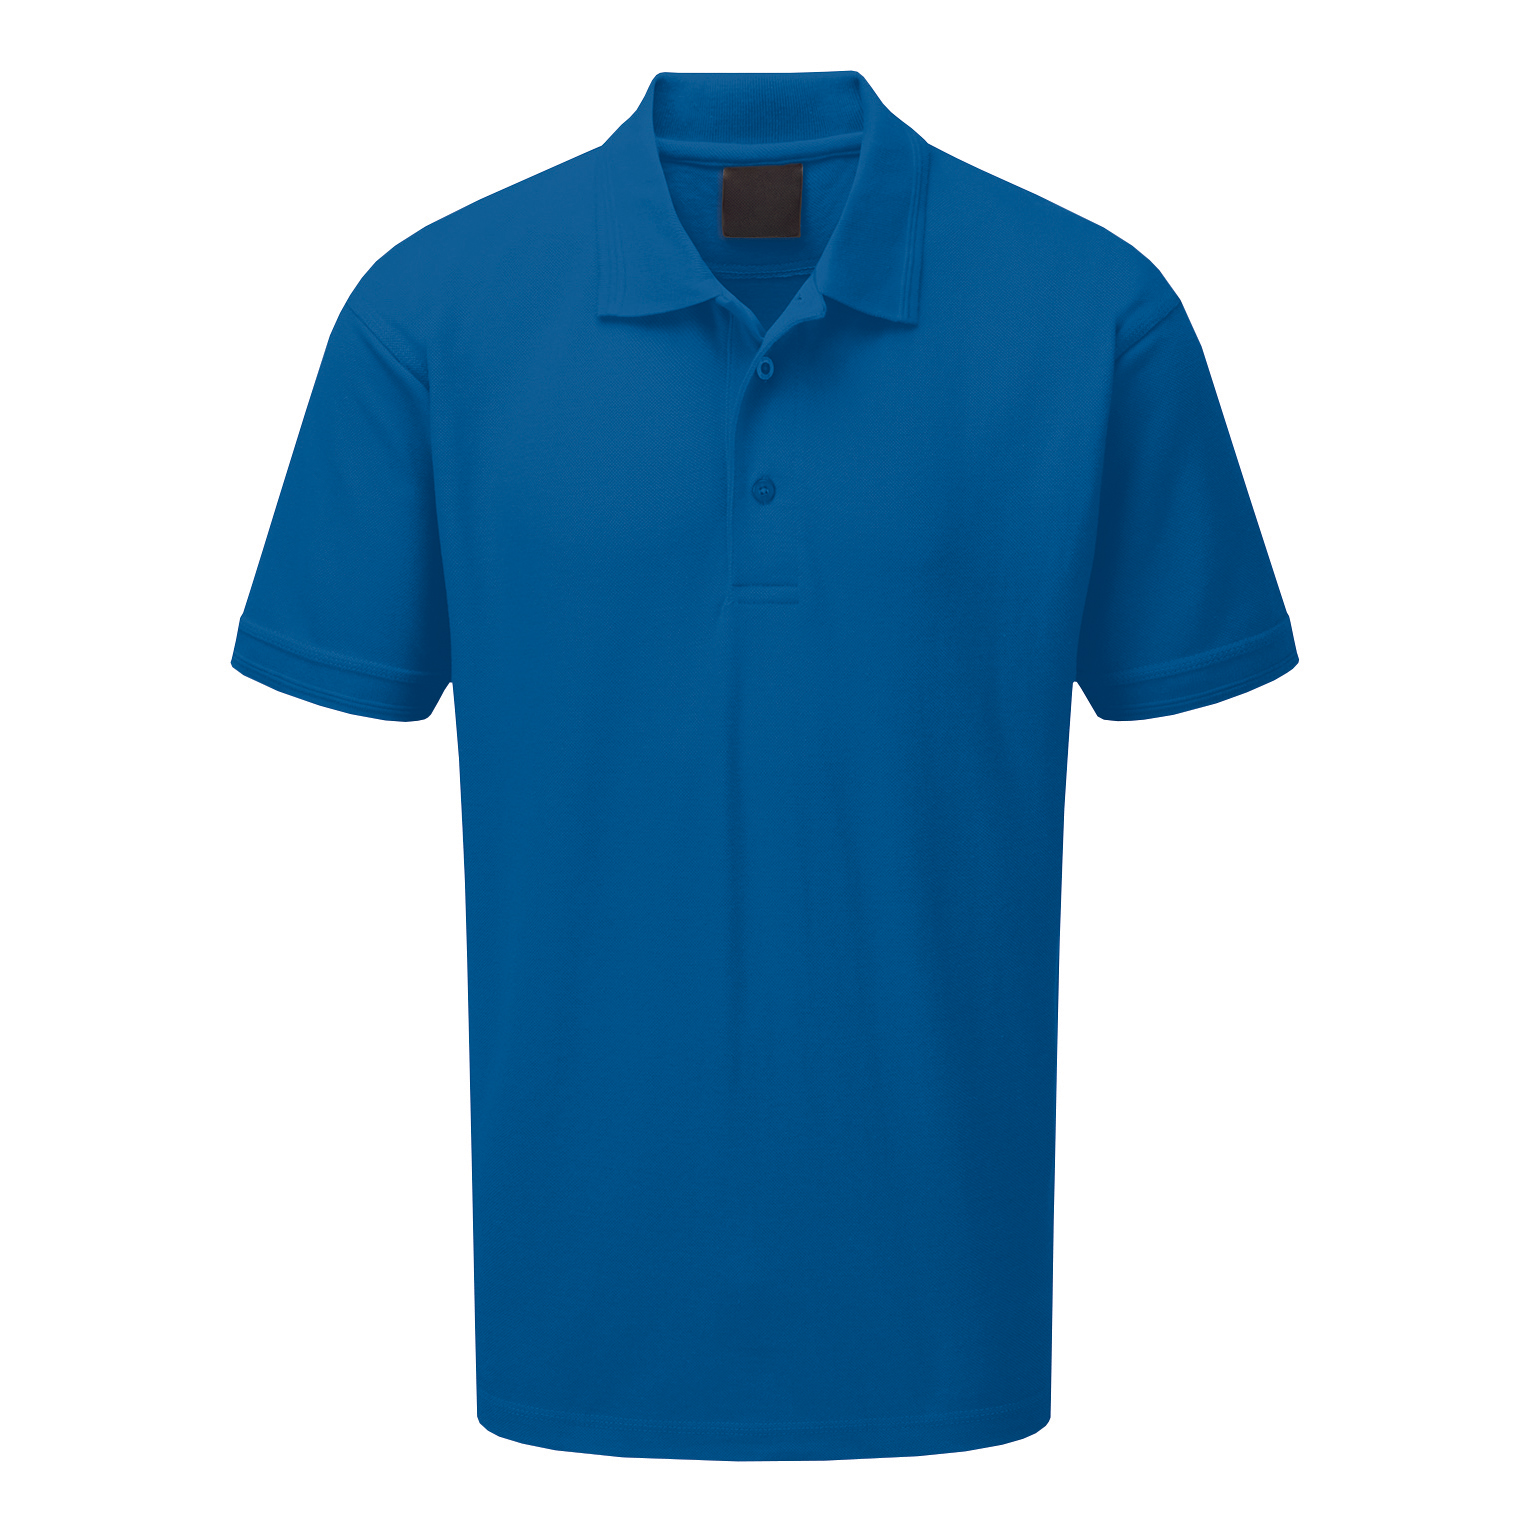 Premium Polo Shirt Triple Button 220gsm Polycotton 5XL Royal Blue Ref CLPKSR5XL *Approx 3 Day Leadtime*